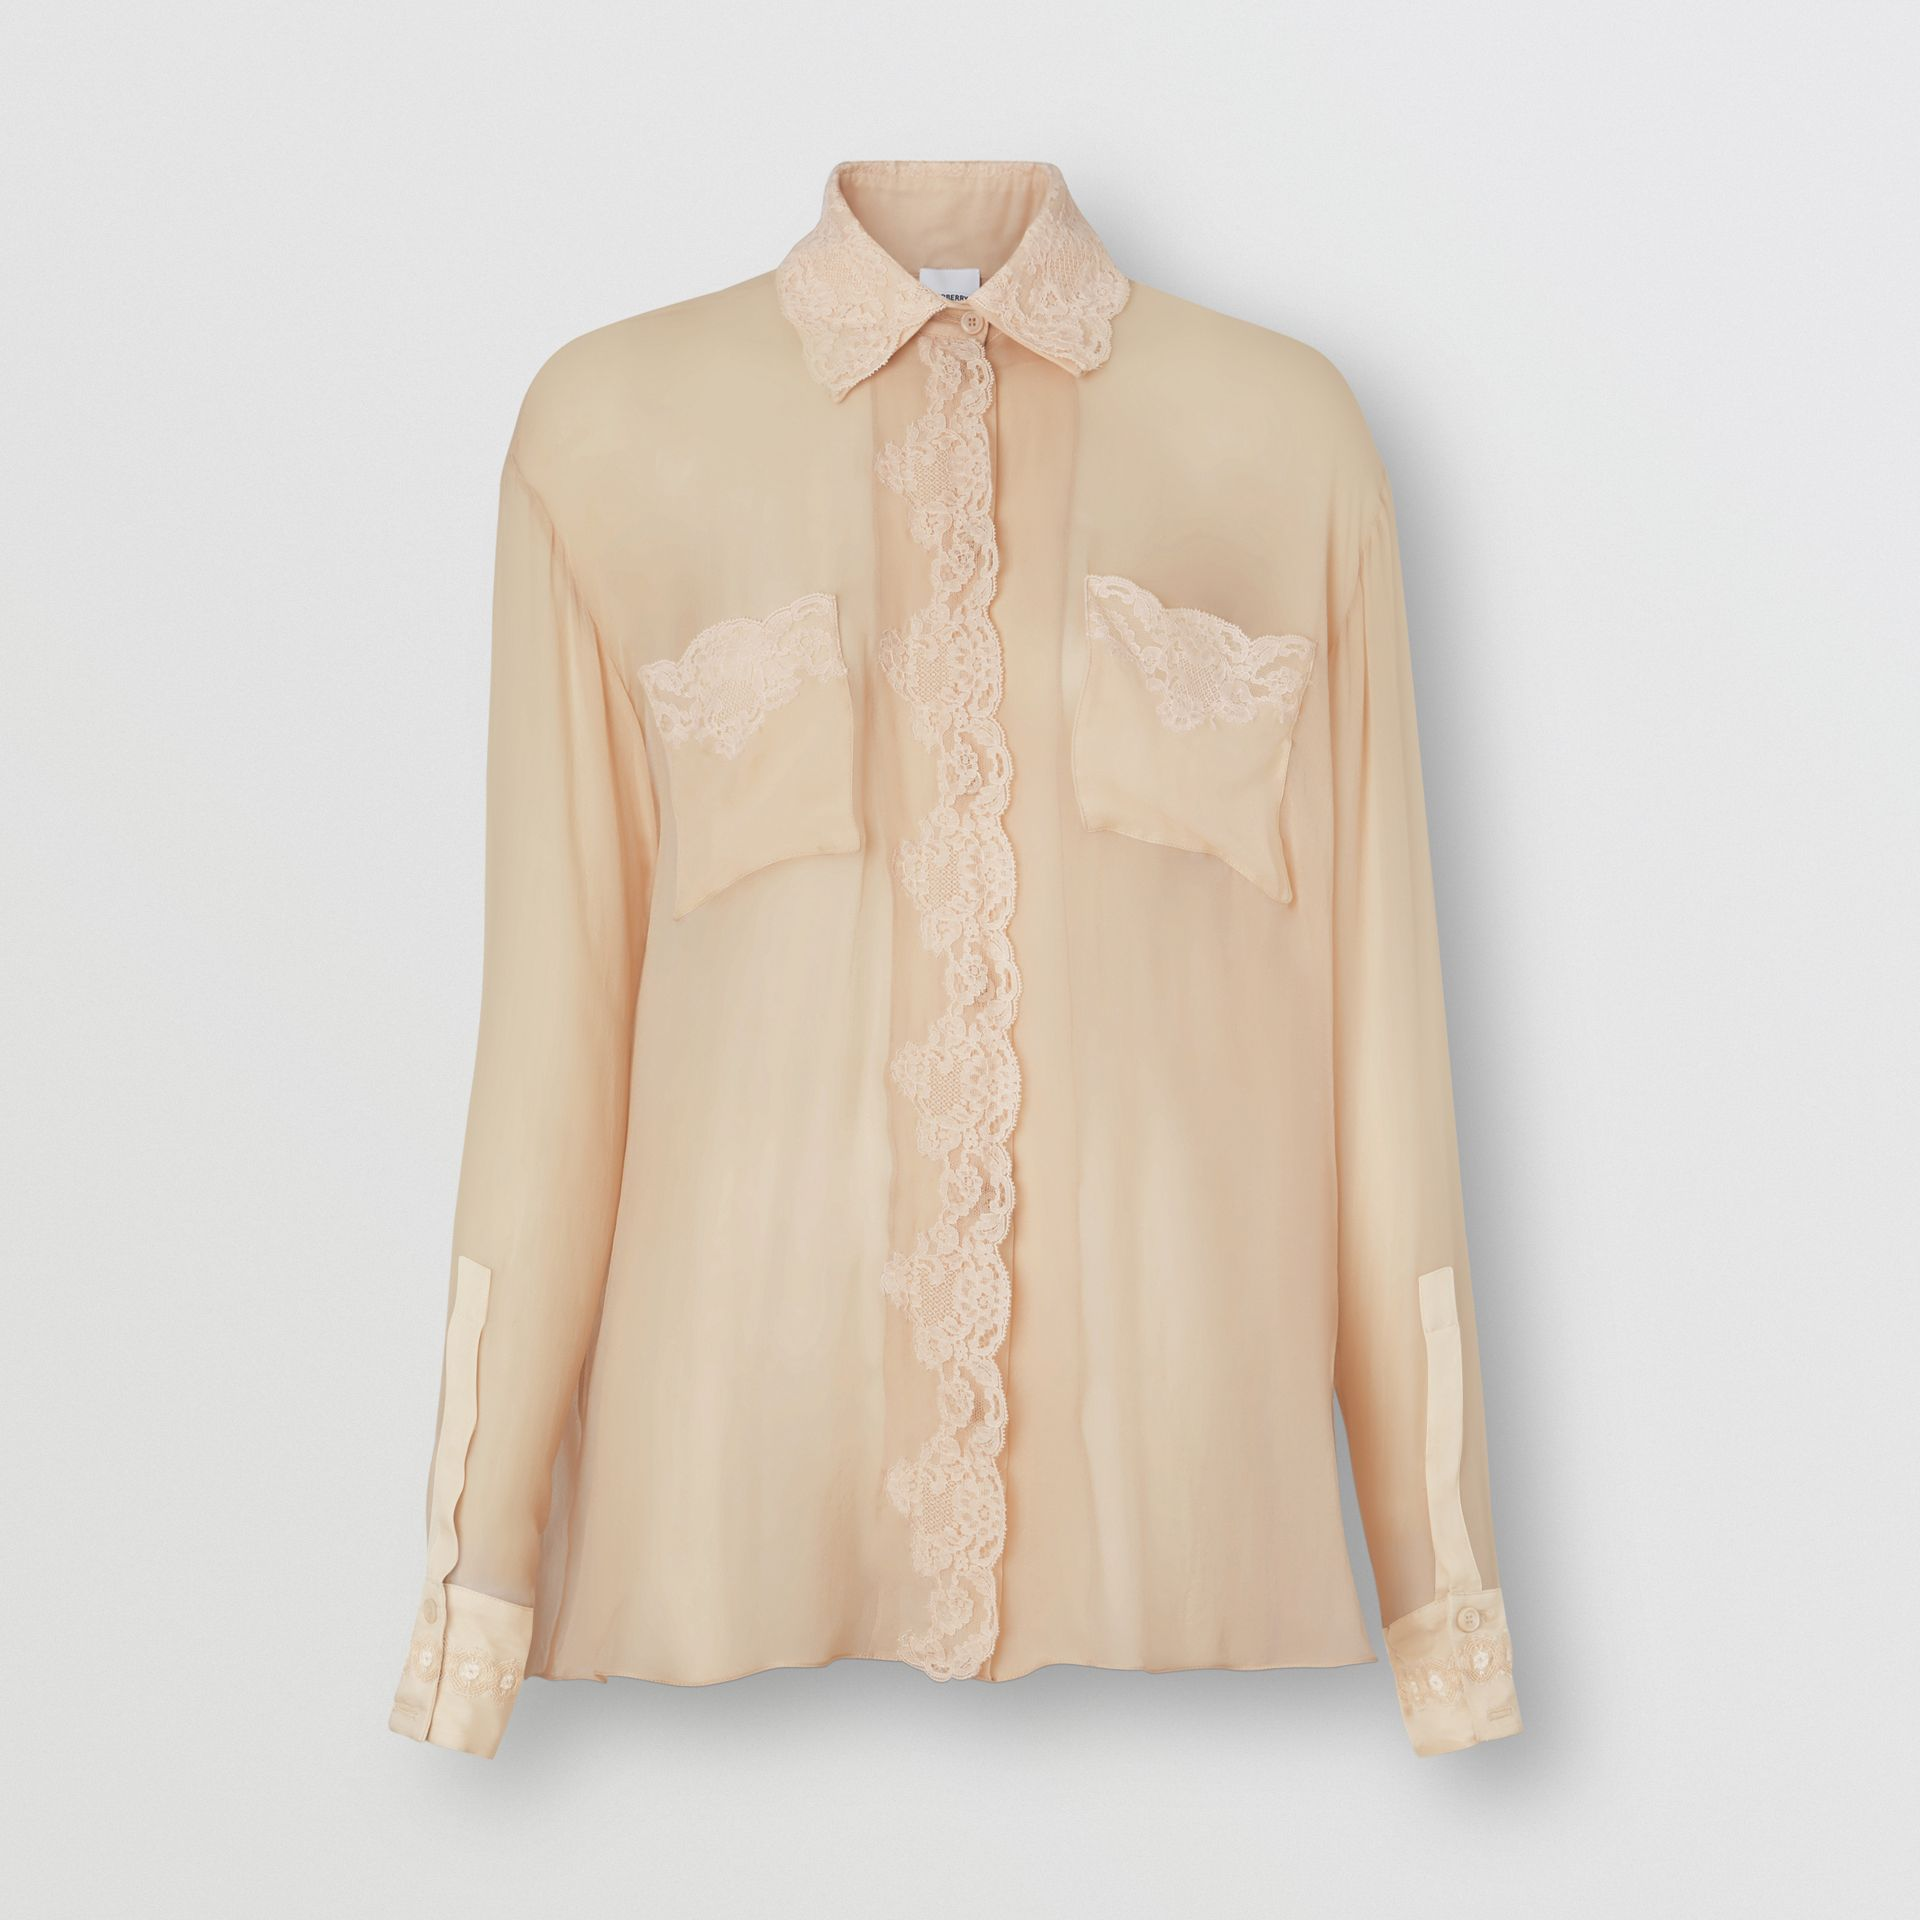 Lace Detail Silk Chiffon Shirt in Soft Peach - Women | Burberry - gallery image 3